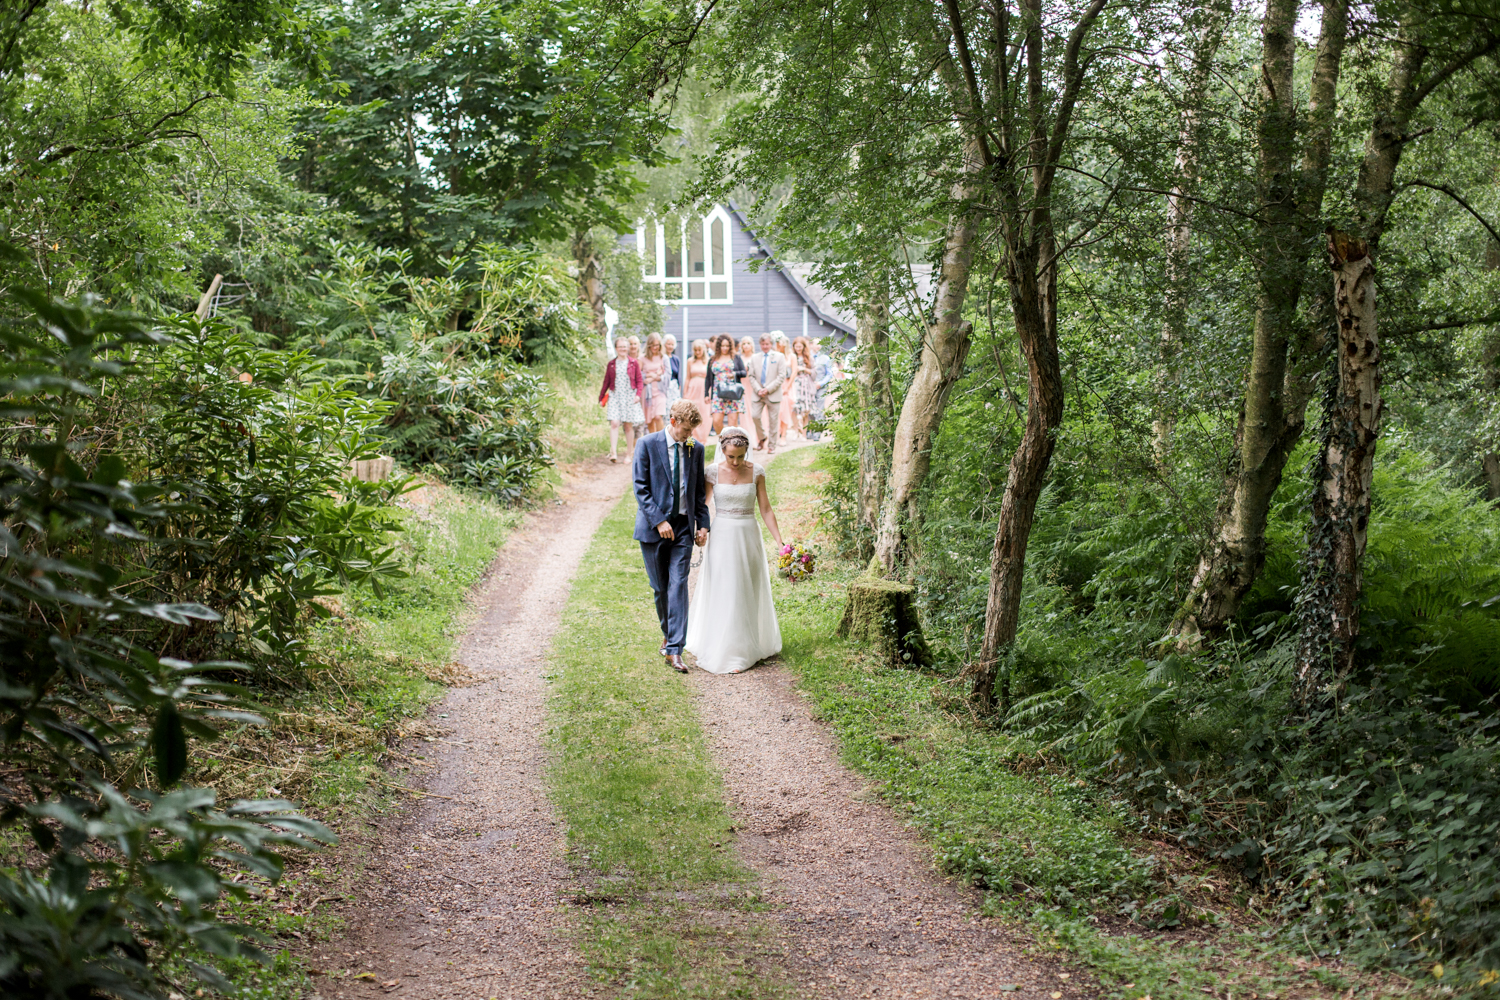 073Lotti & Dave marquee wedding Sophie Evans Photography West Midlands reportage wedding photography.jpg